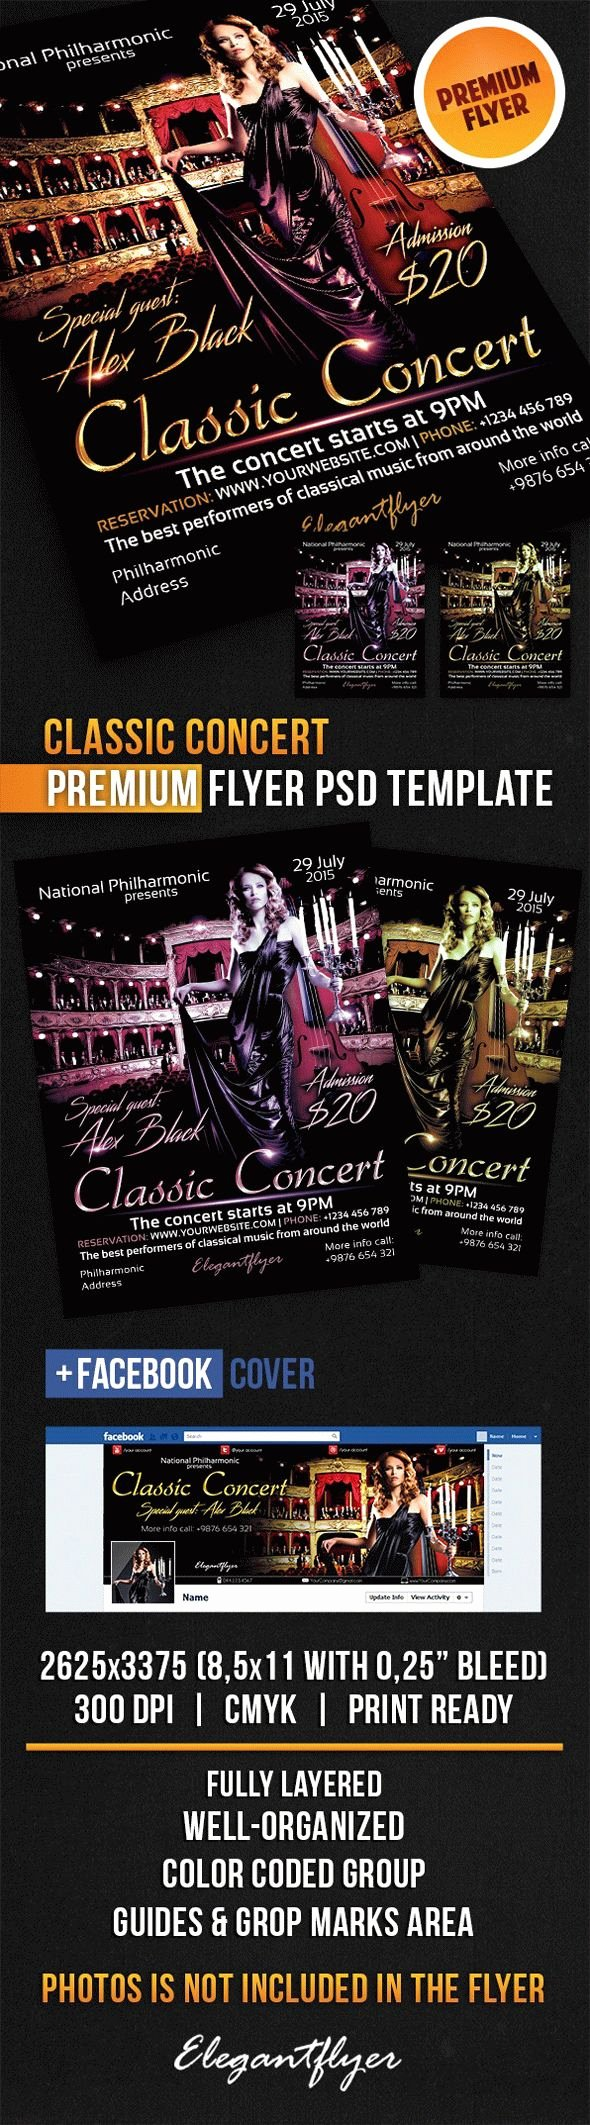 Concert Flyer Template Psd Beautiful Classic Music Concert Flyer – by Elegantflyer